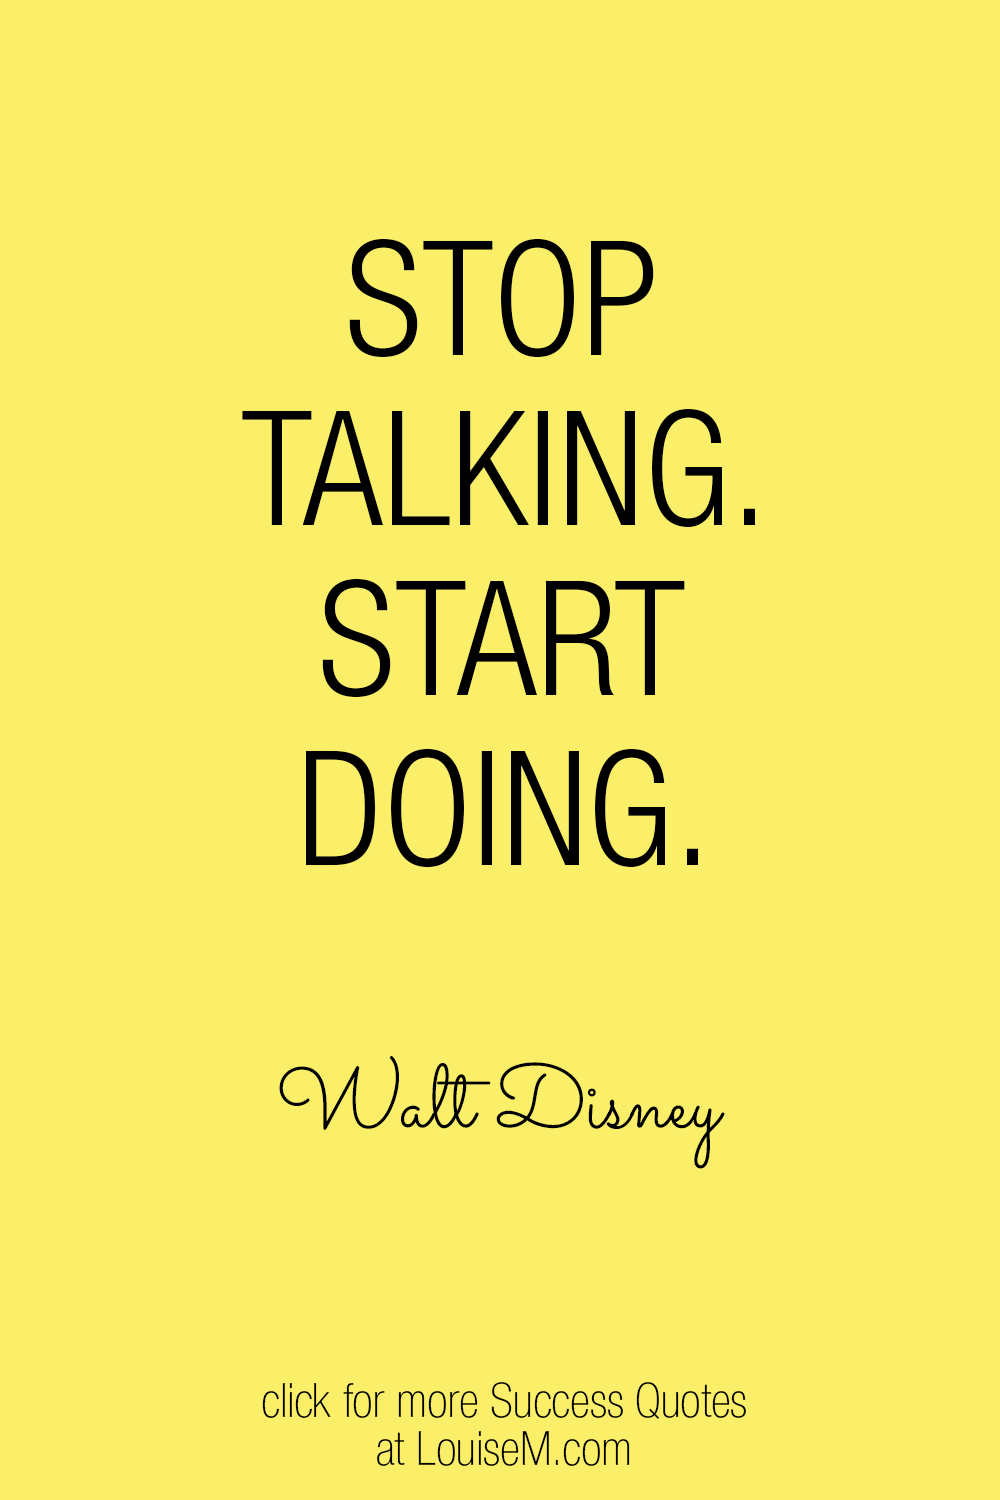 quit talking and begin doing quote image